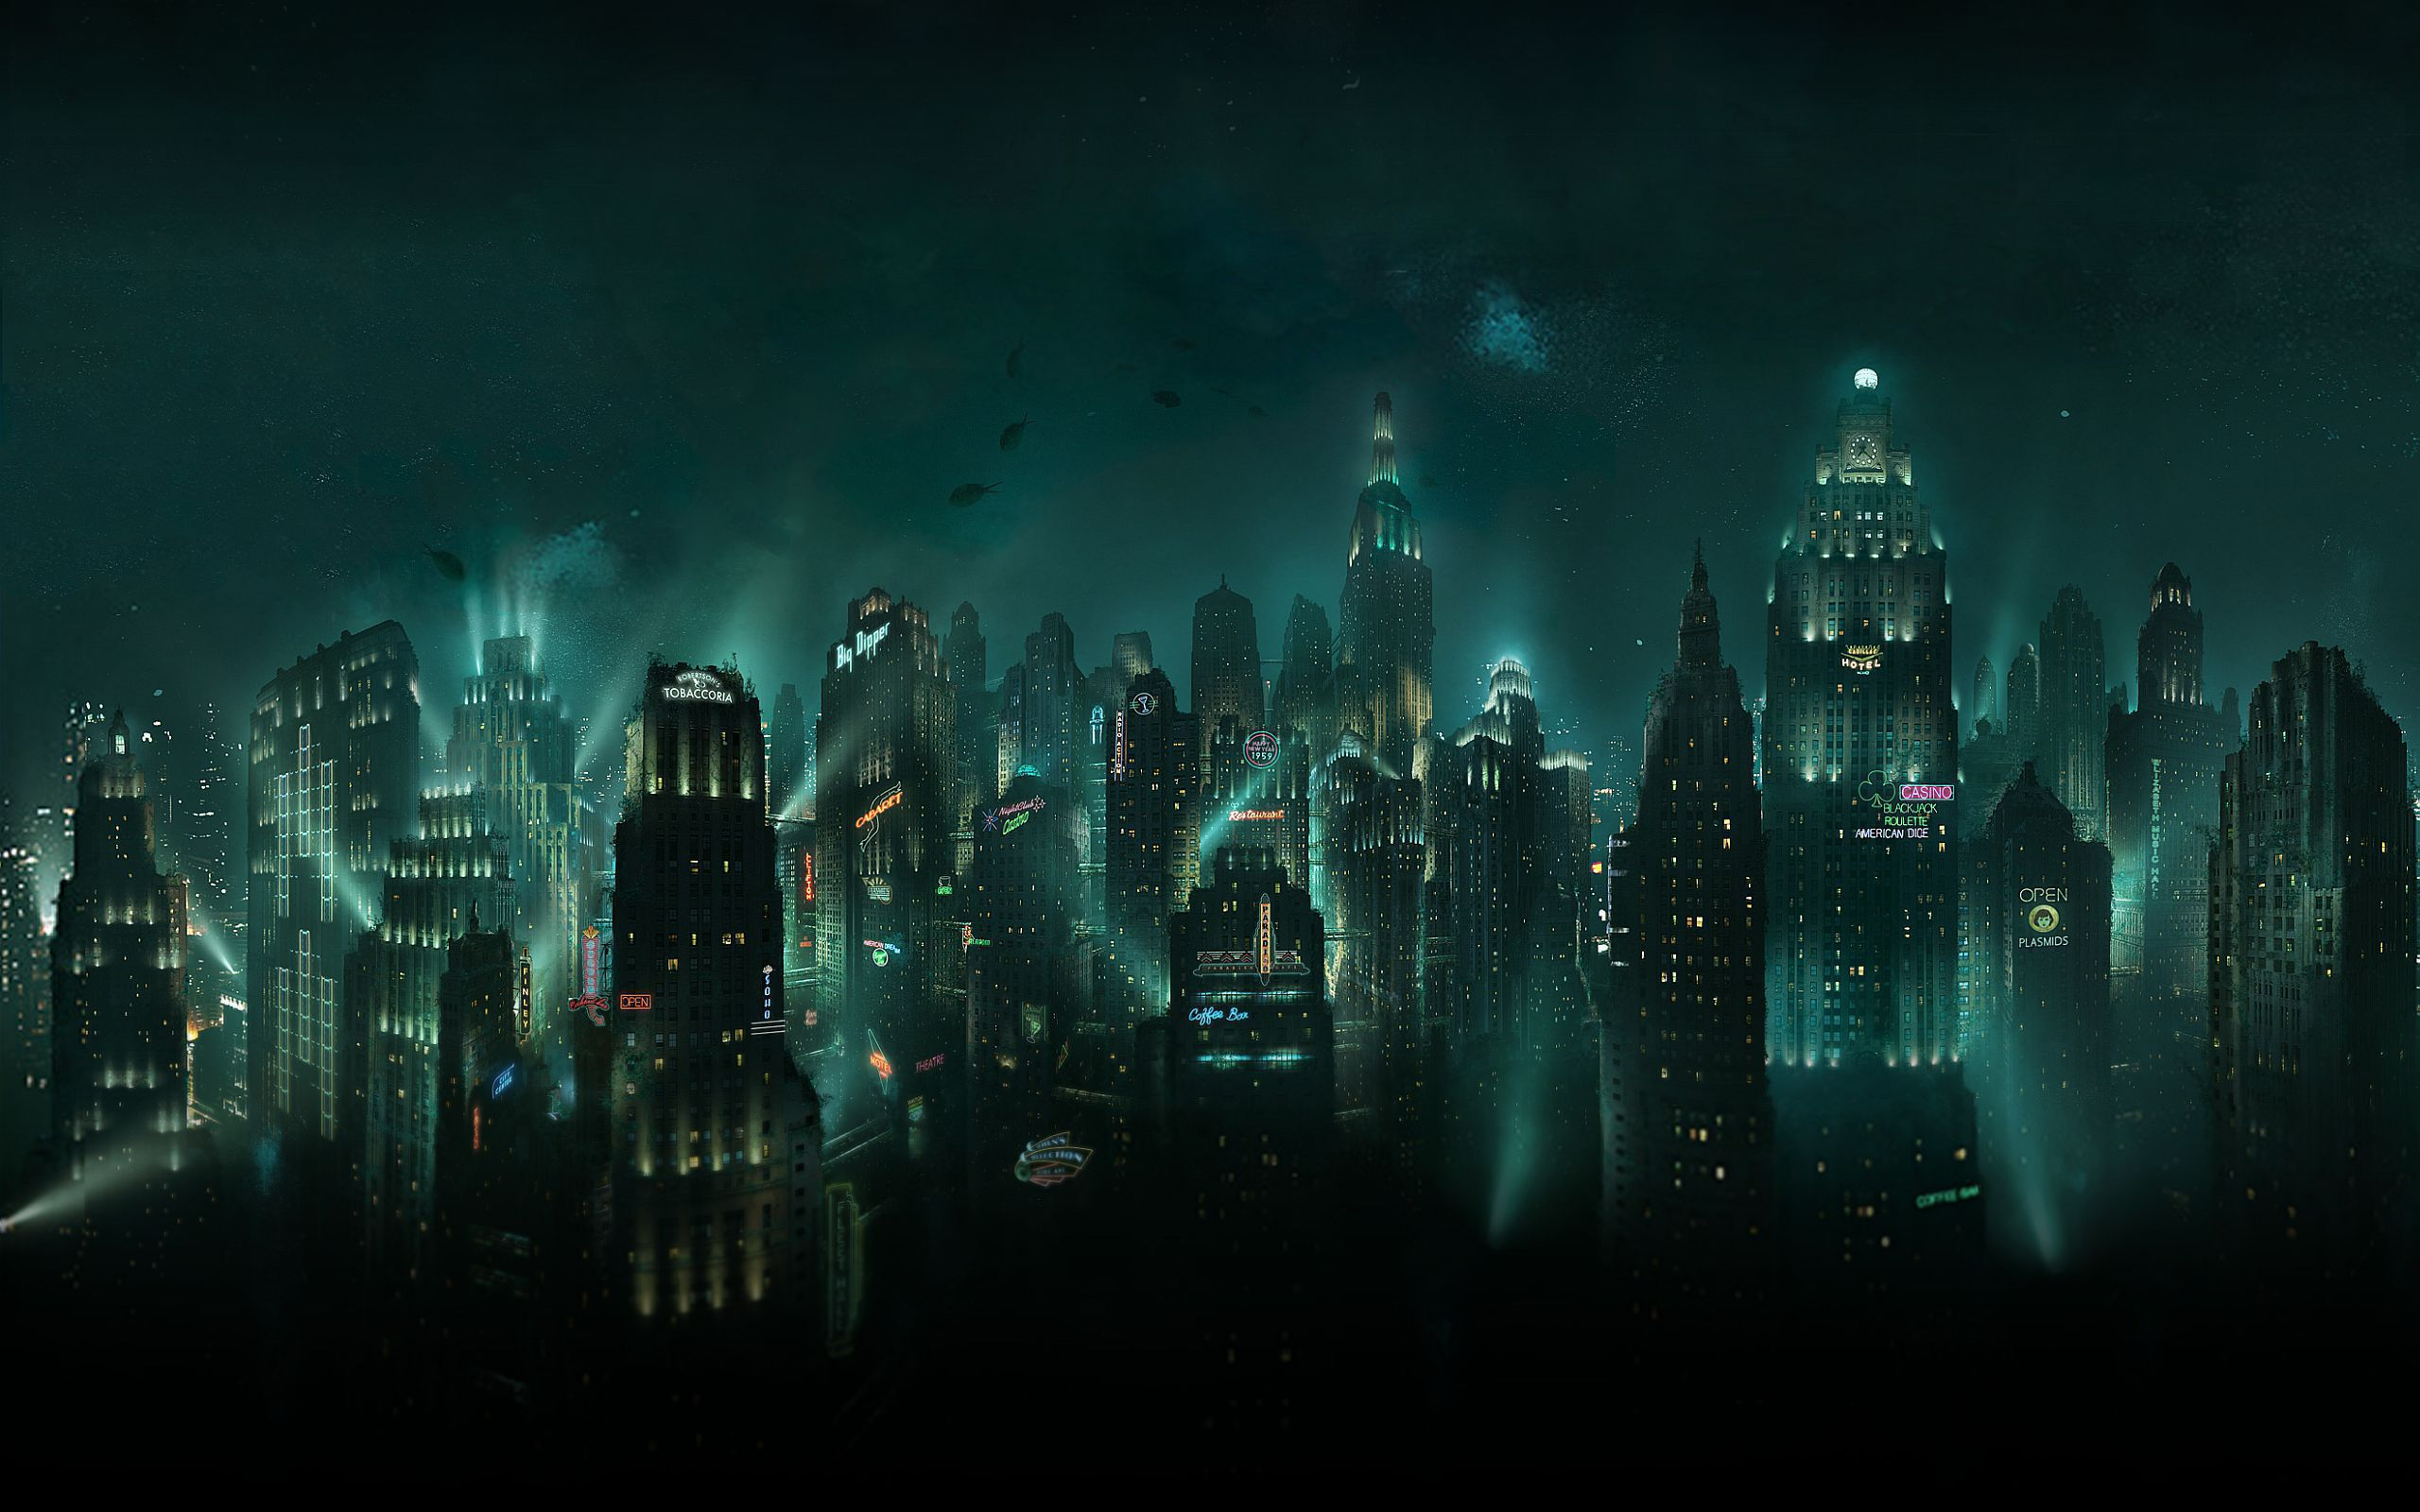 Bioshock Wallpapers HD